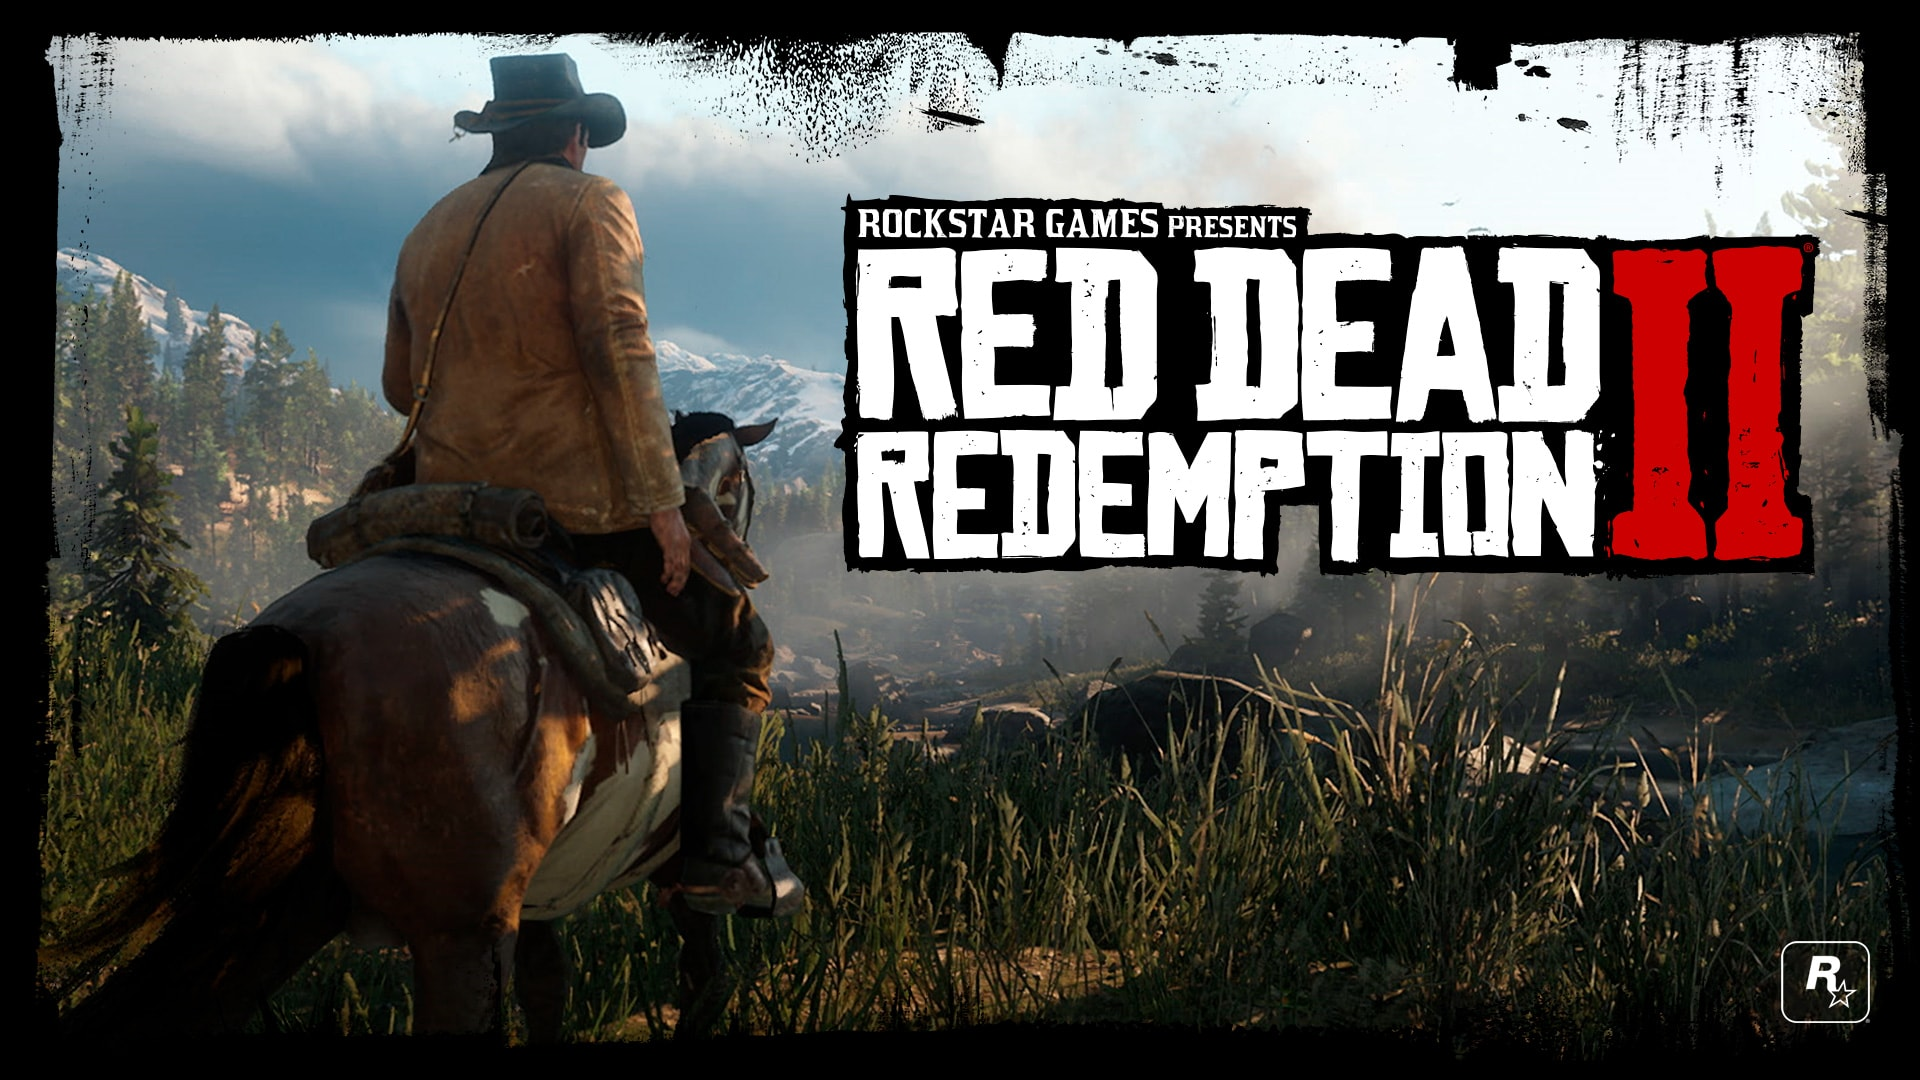 Red Dead Redemption 2 is getting a new gameplay video tomorrow